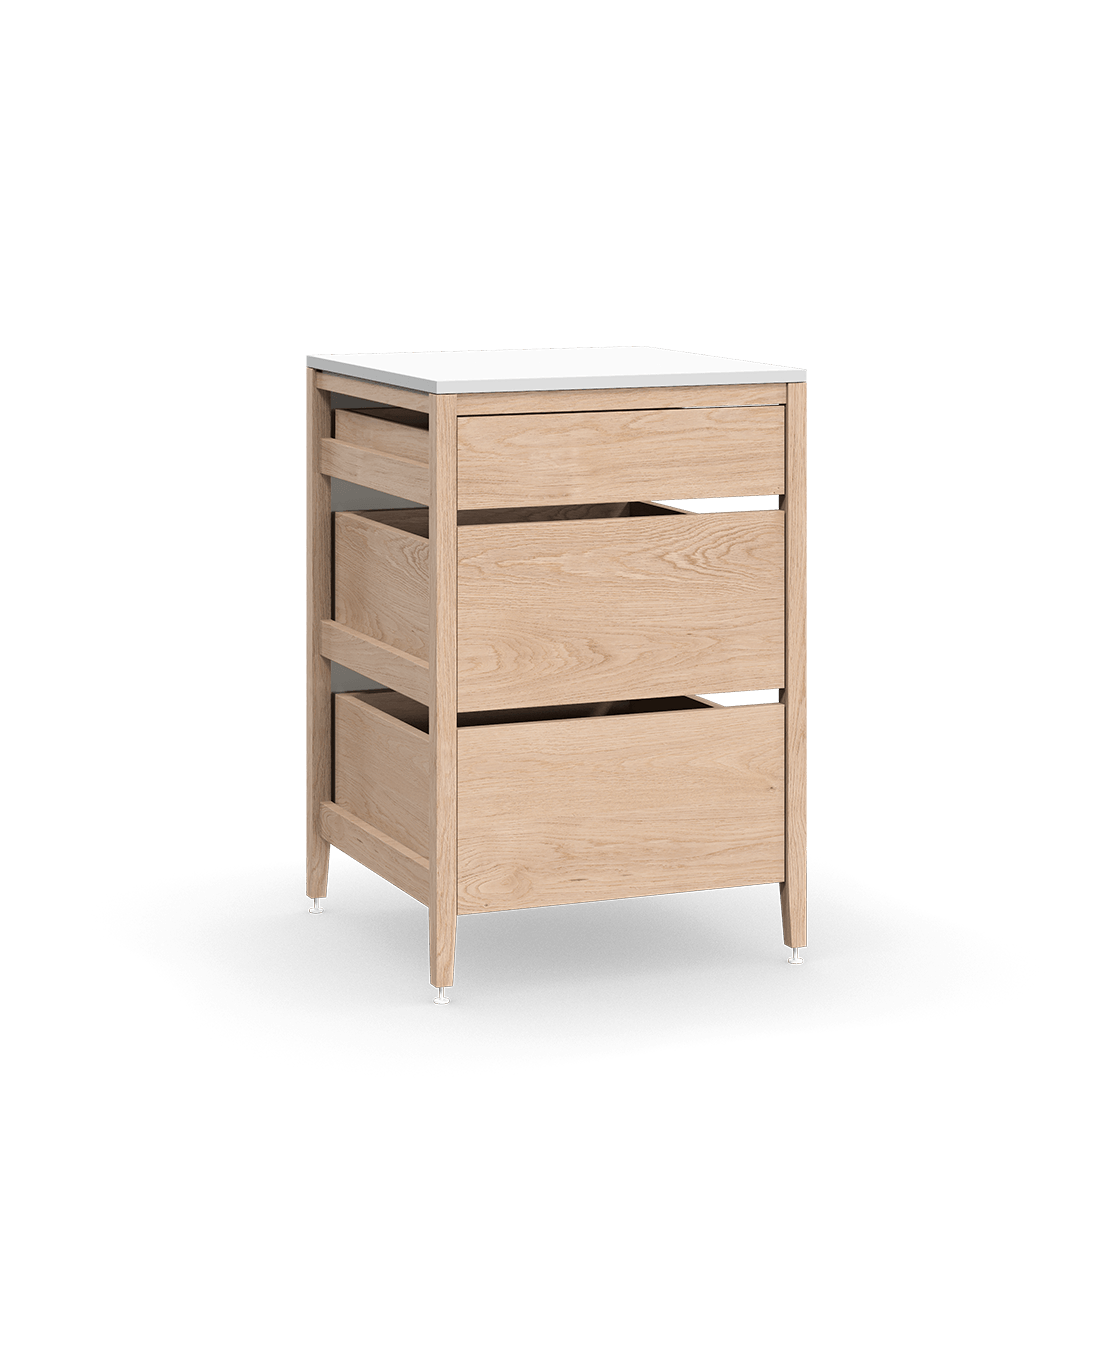 coquo radix white oak solid wood modular 3 drawers base kitchen cabinet 24 inch C1-C-24TB-3003-NA